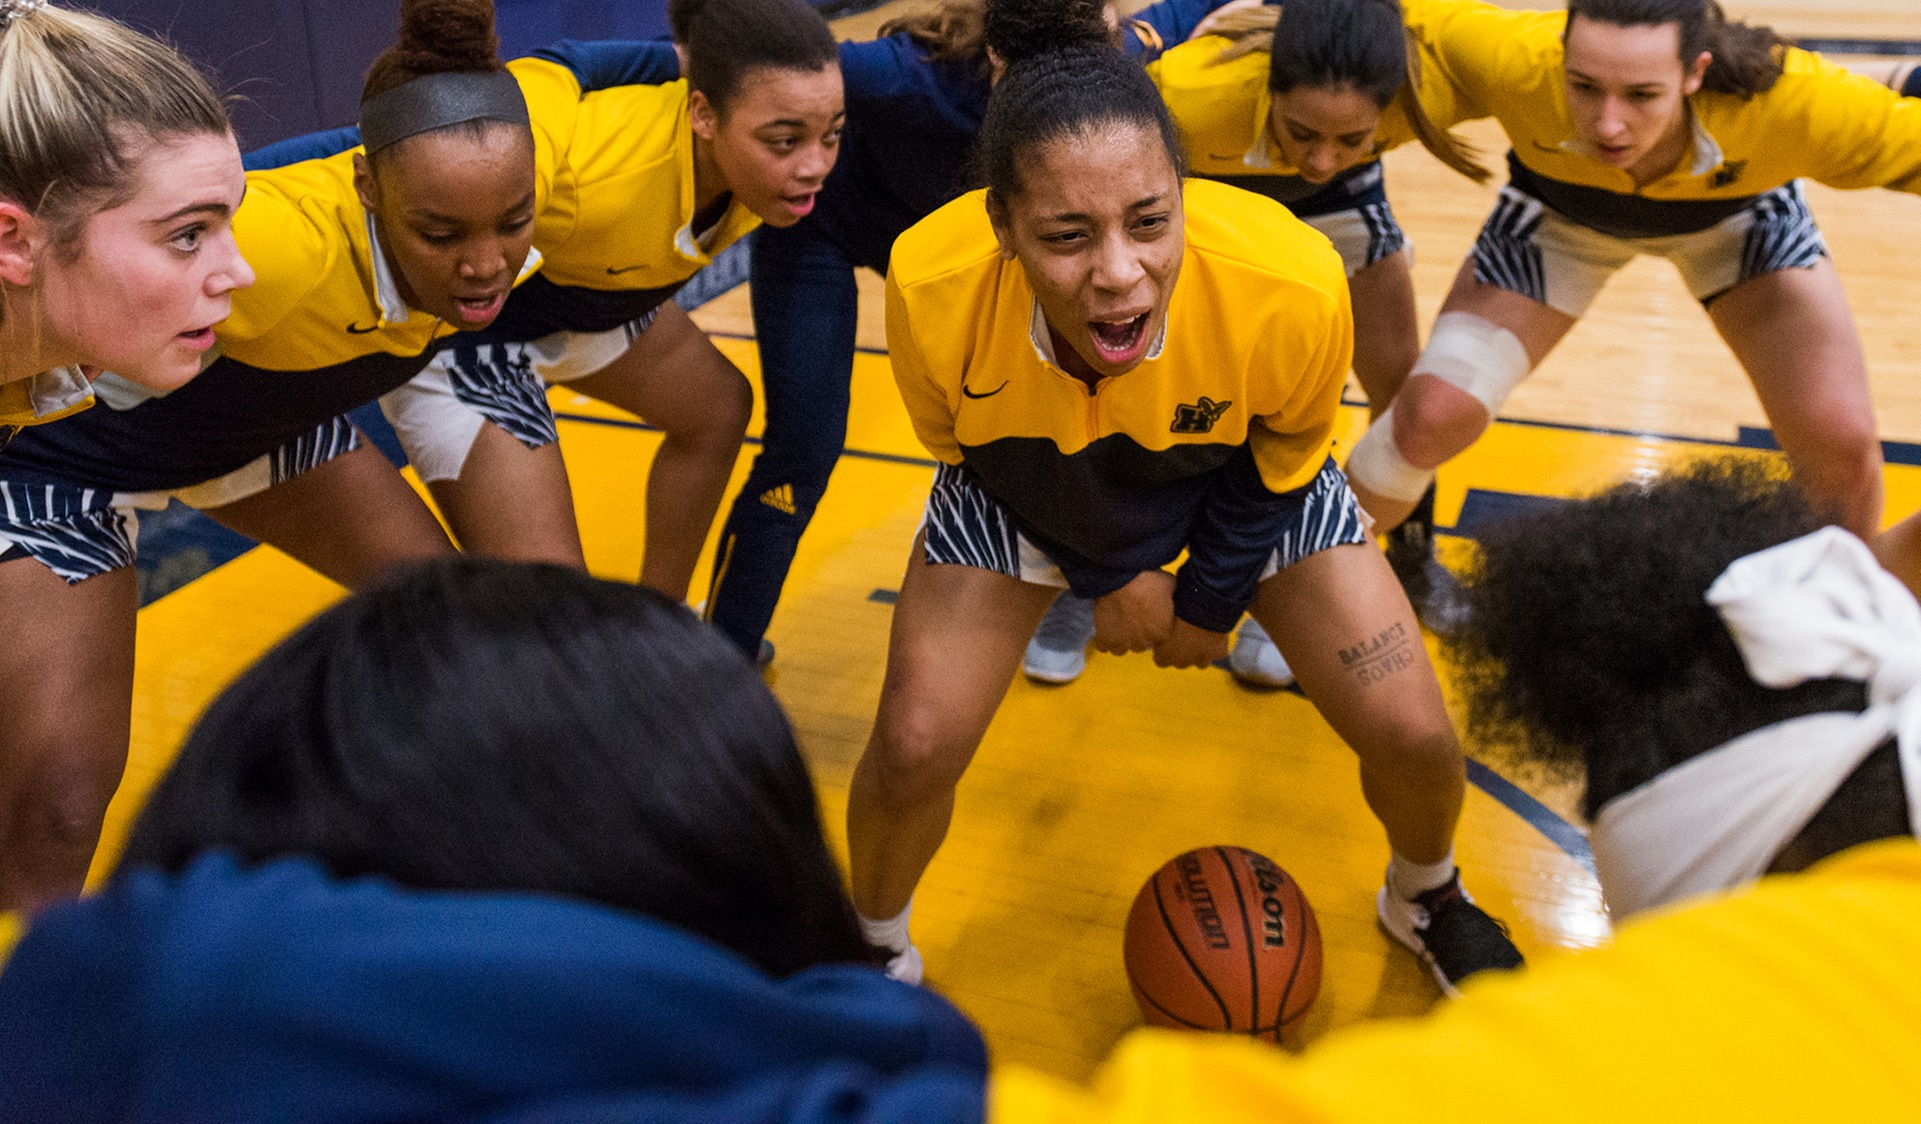 WOMEN'S BASKETBALL DROP THREE OF FOUR GAMES DAWSON INVITATIONAL